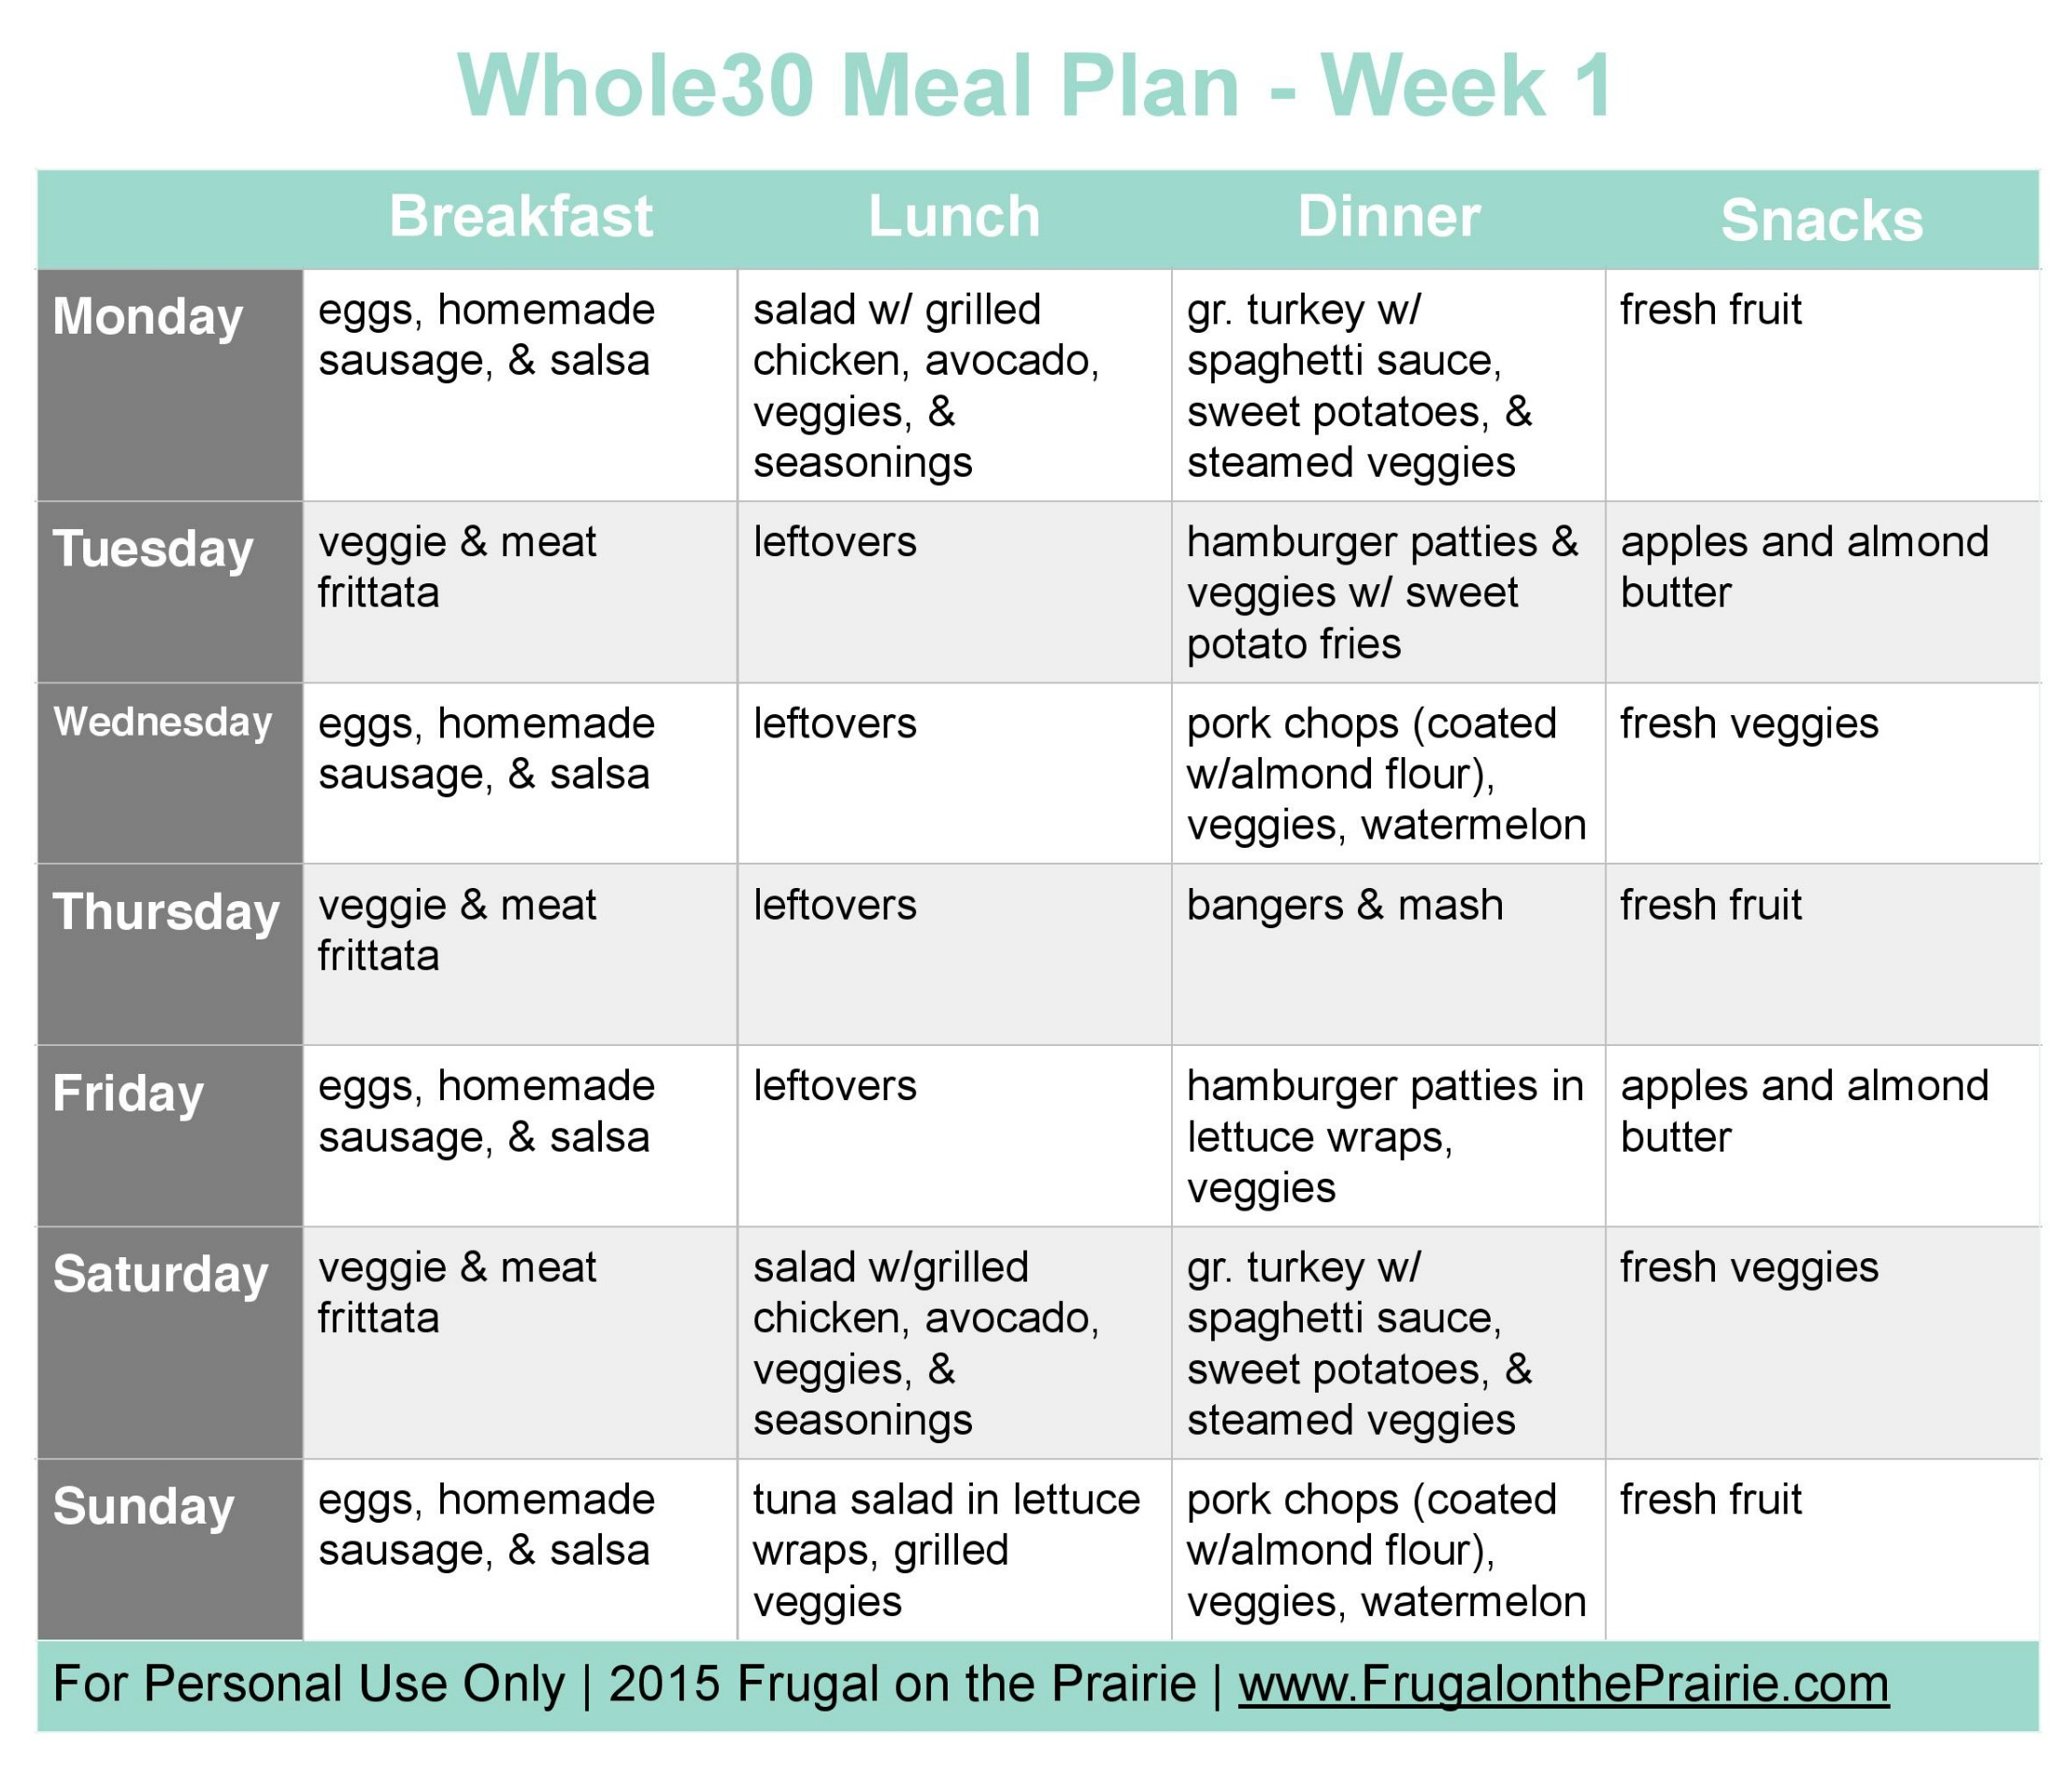 whole30 meal plan week 1 fotp square format original